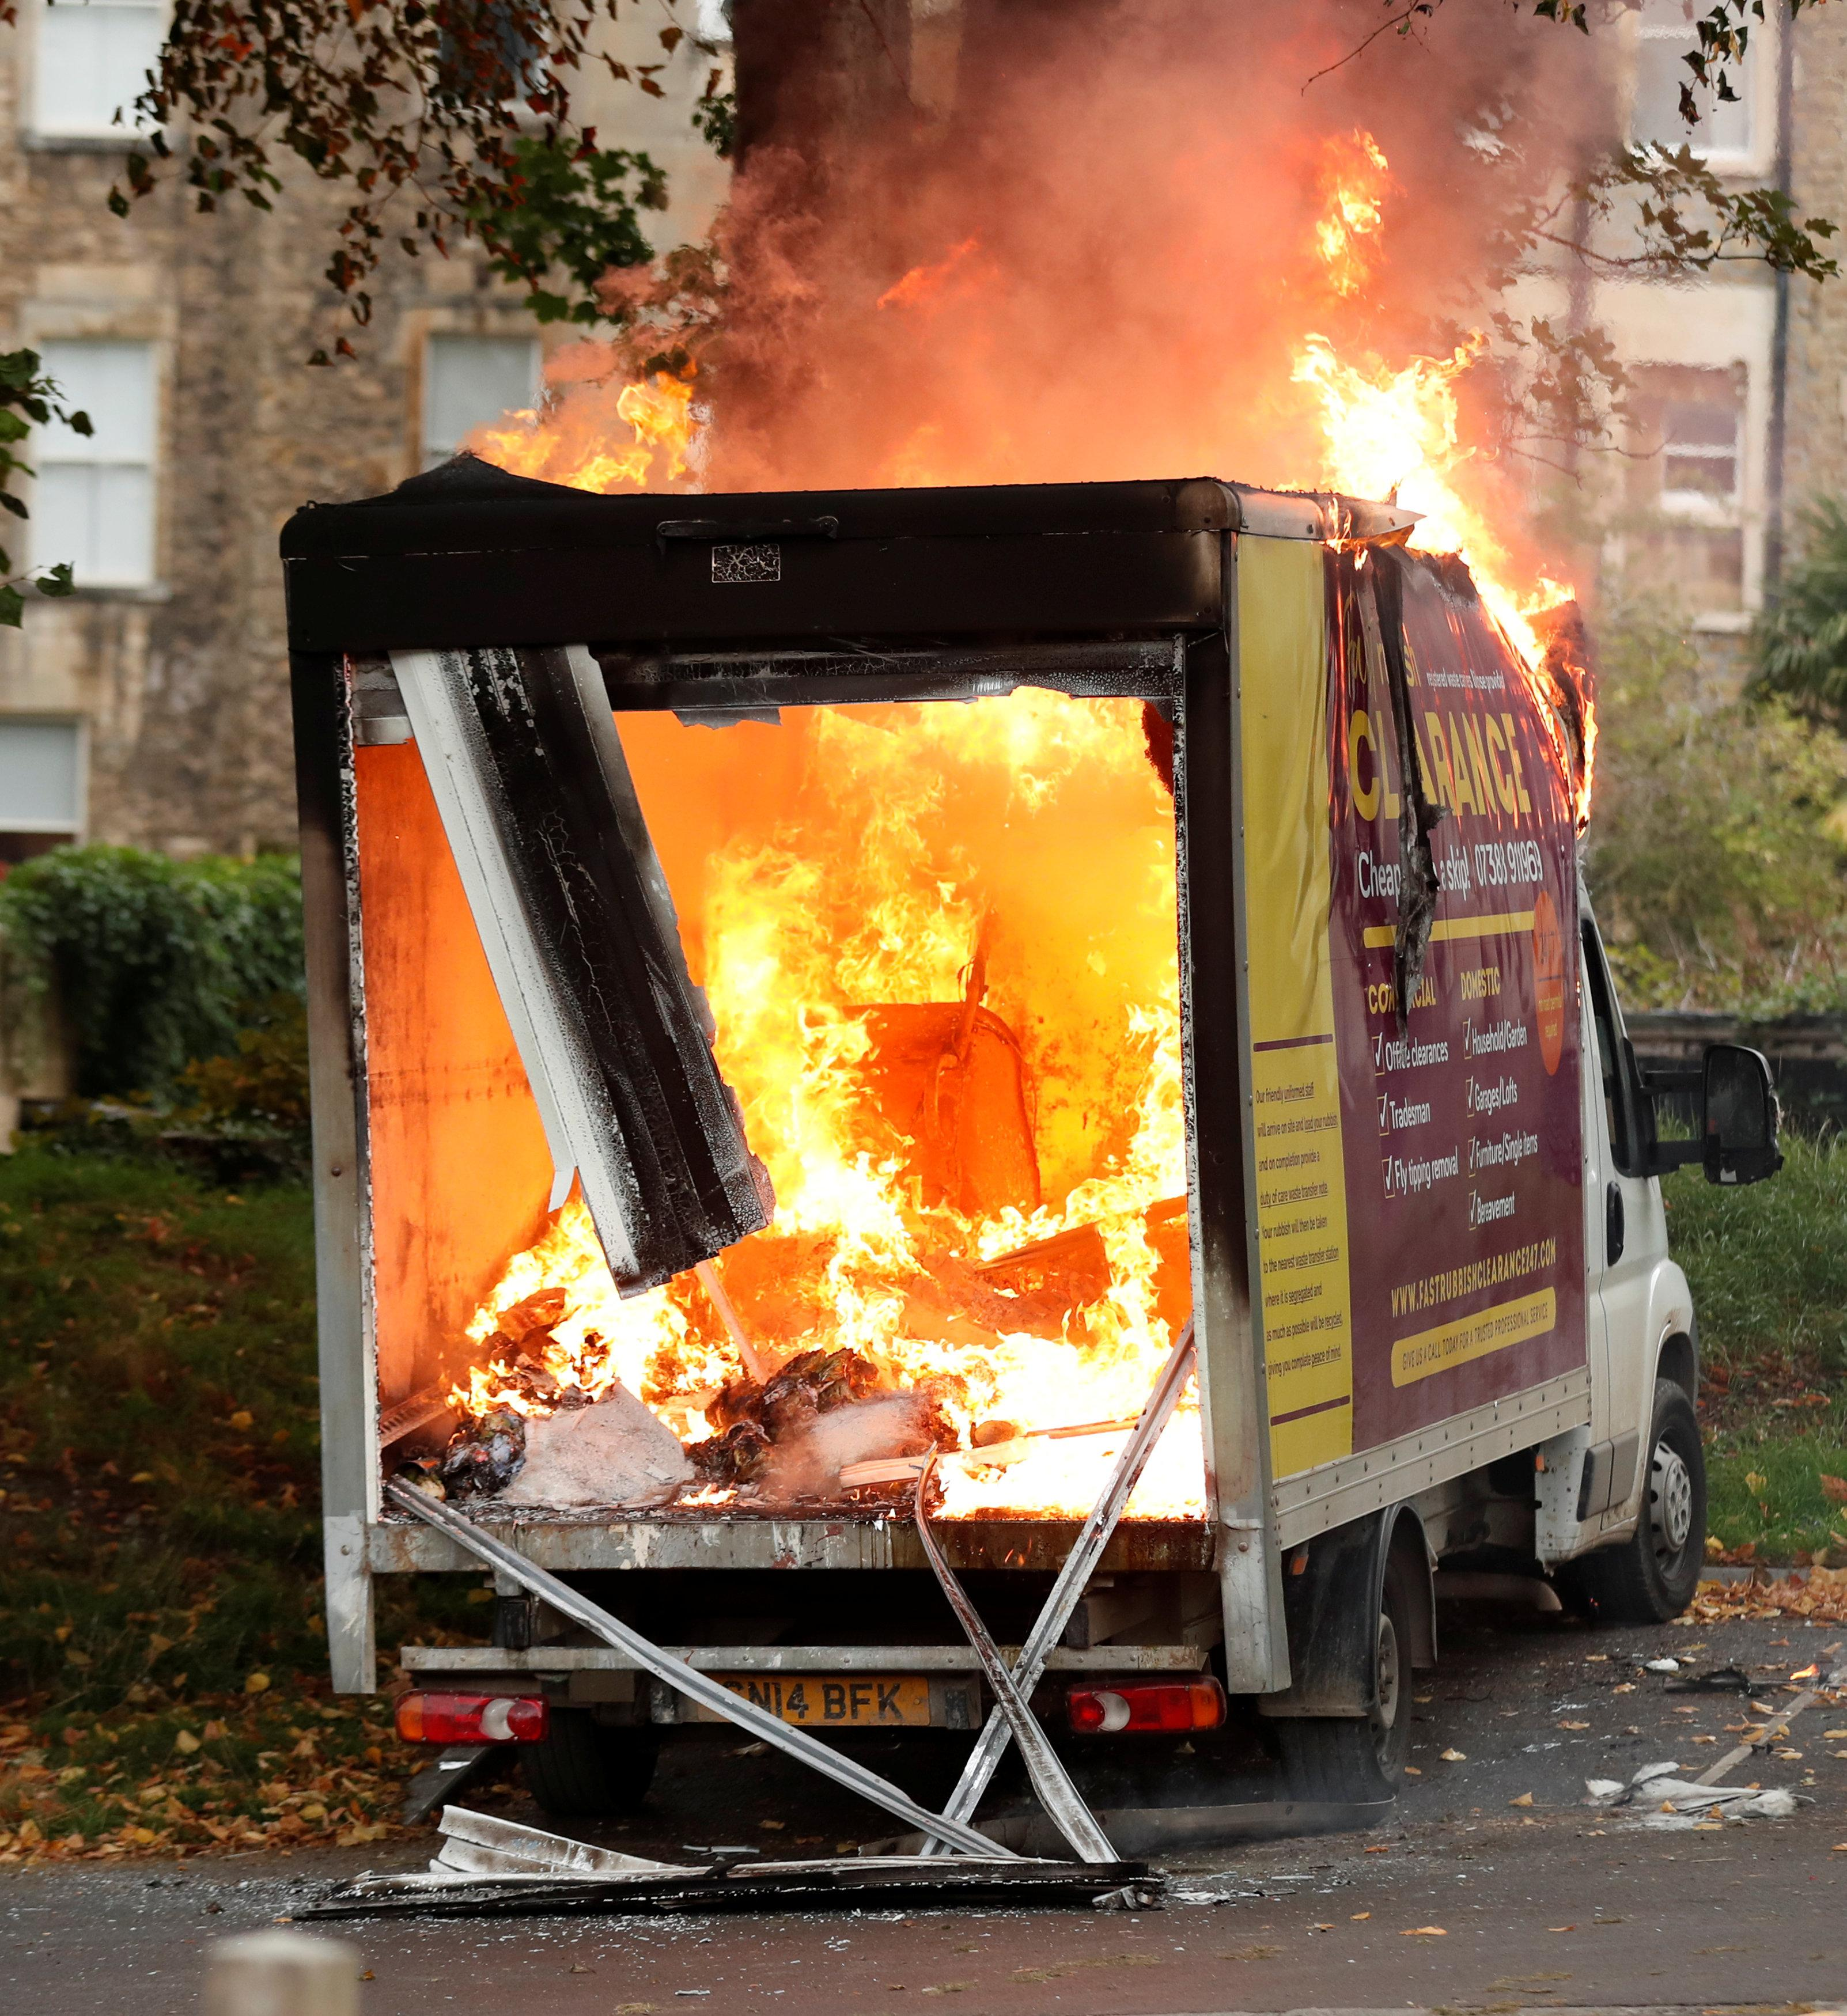 This is the terrifying moment a van caught fire outside a rugby stadium